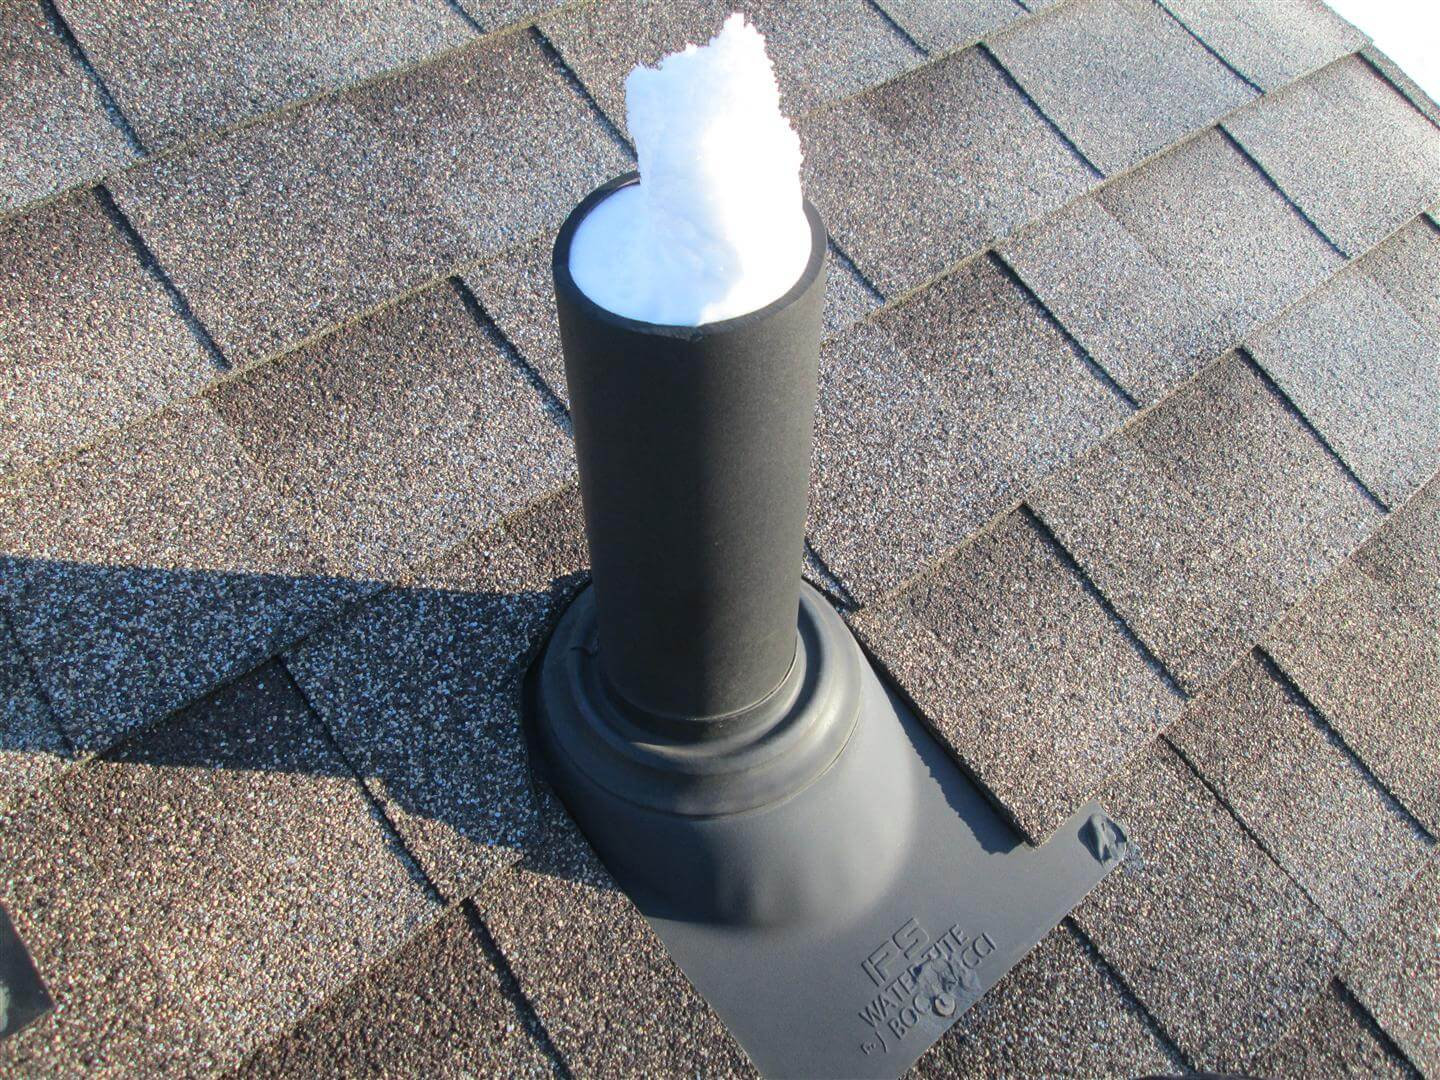 attic antenna ideas - Plumbing Vents Covered with Frost